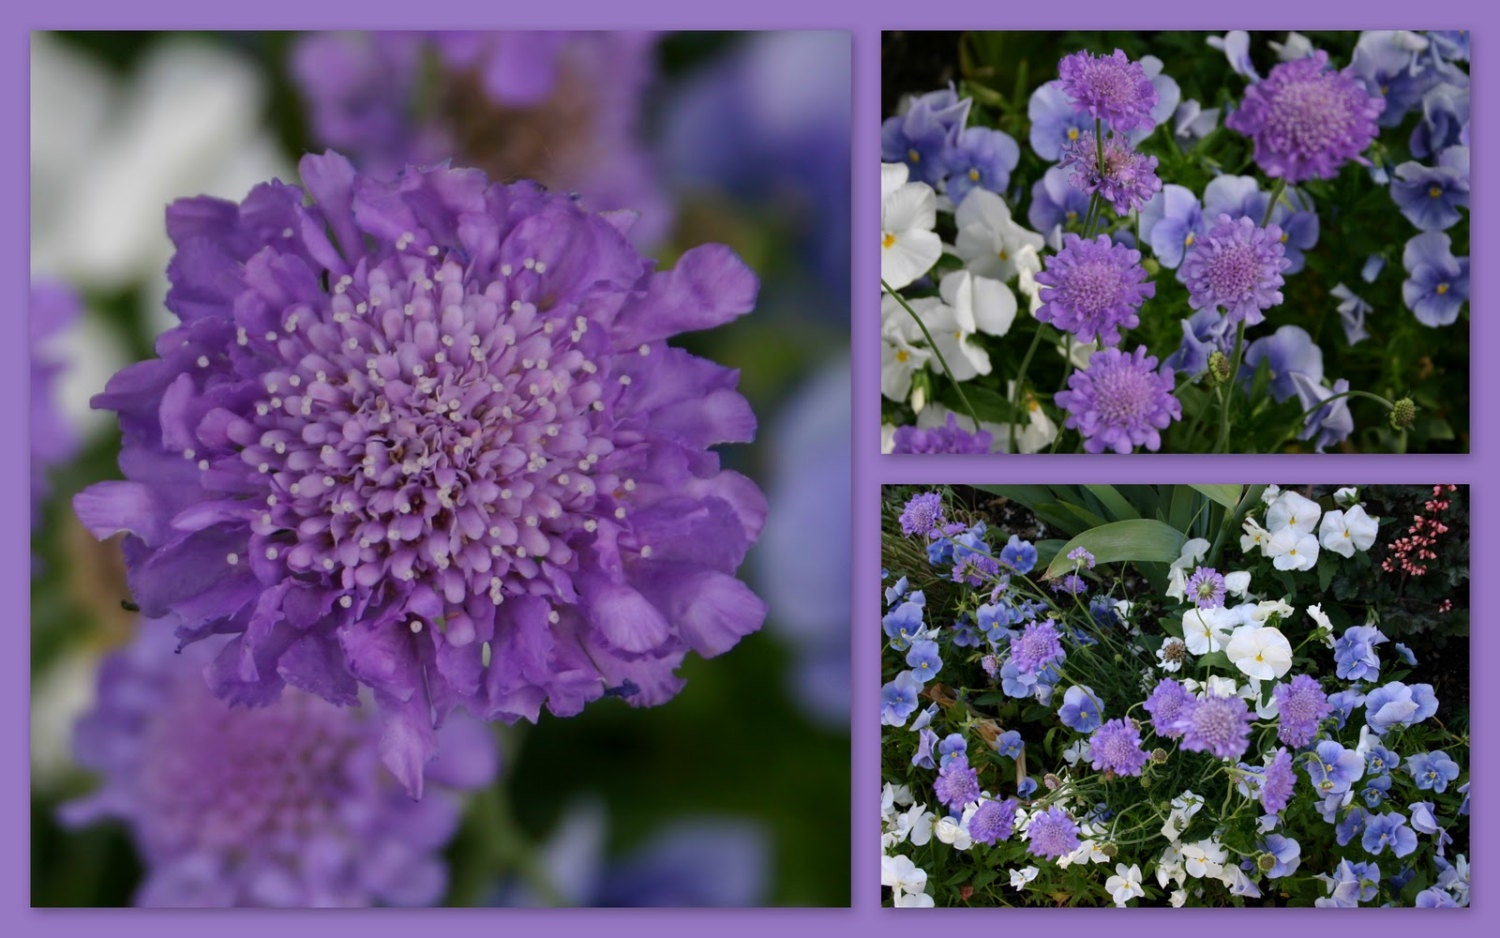 Scabiosa Seeds Purpleflowers Seedscommonly Known As Etsy